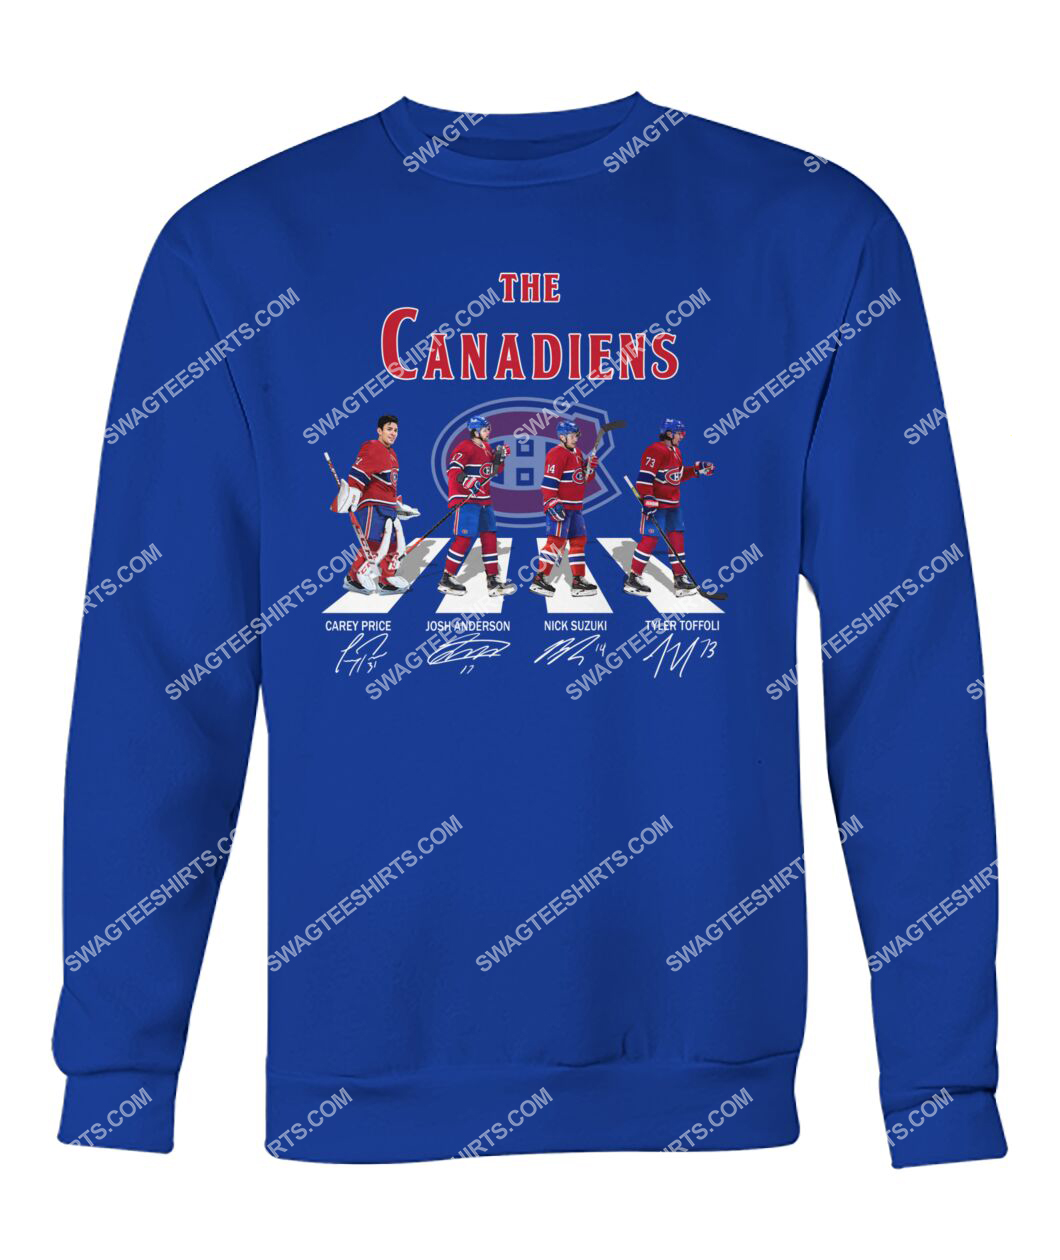 abbey road the montreal canadiens signatures sweatshirt 1